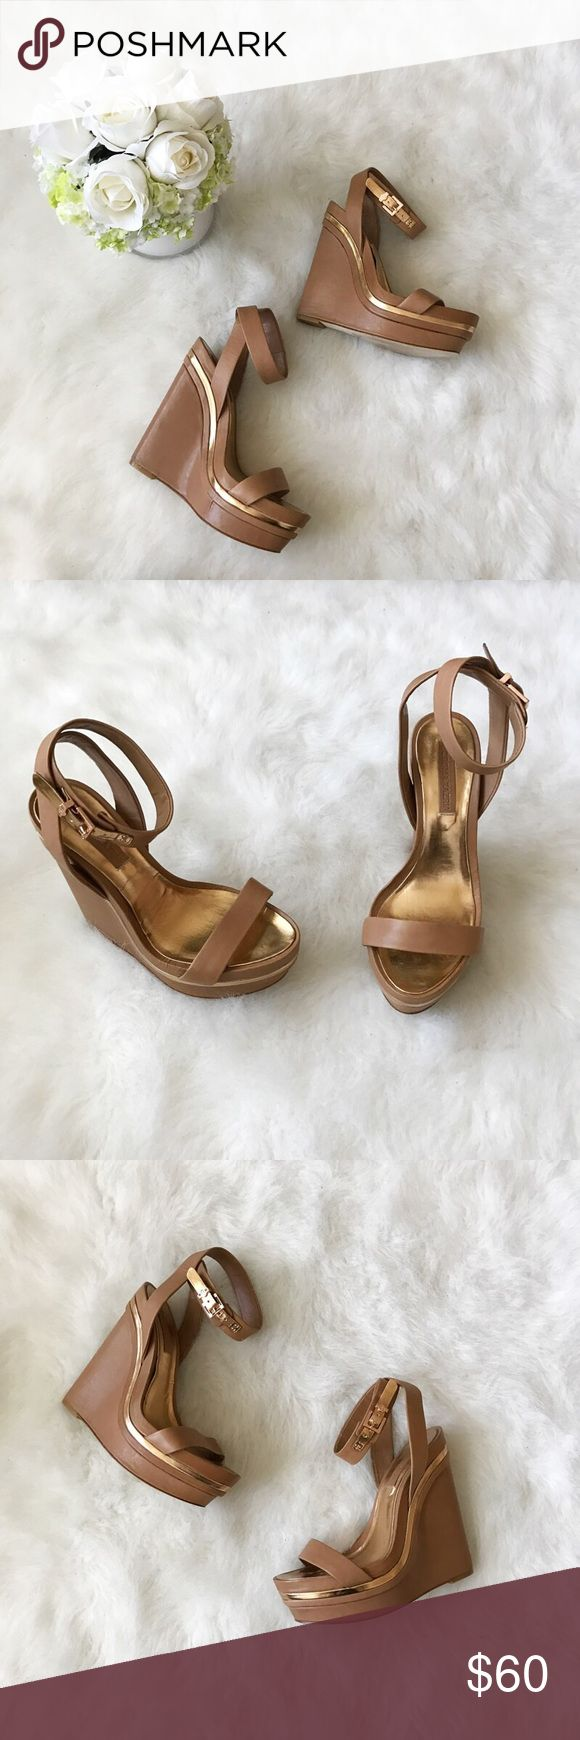 BCBG MAXAZRIA Laura Platform Wedges💛 BCBG MAXAZRIA Laura Platform Wedges💛 Size: 7.5 Condition: Used (worn once) Trendy summer wedges,perfect to pair with jeans, maxi dresses, bikinis or skirts. They do not come with box,selling these for my sister who wore them once to a Las Vegas pool party. They feature a strappy look, gold features and heel height of approximately 4.5 inches. Small flaws on left wedge heel. Grab these beauties while you can ☀️😊   In Bin: F3 **All items from my closet…